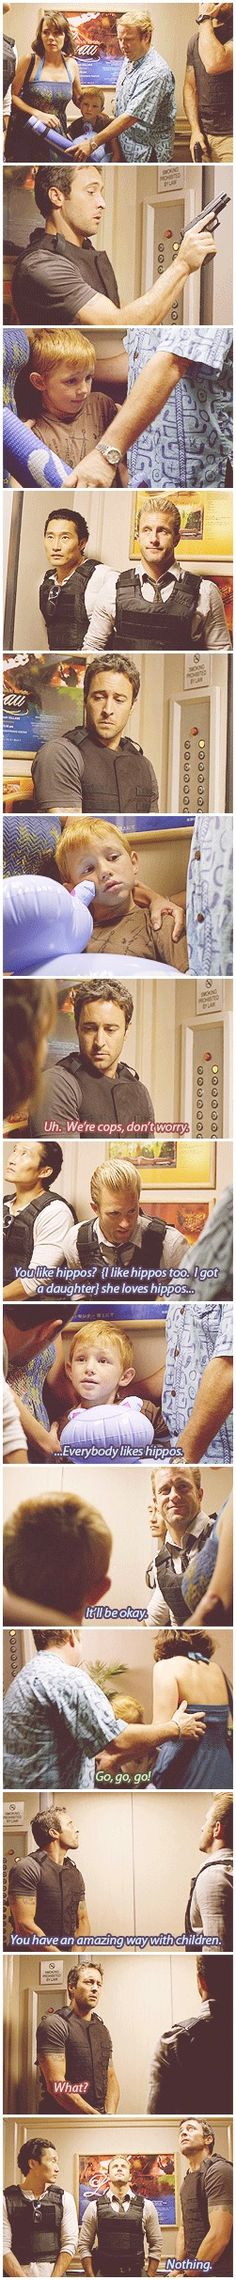 #HawaiiFive0 And that is why Steve isn't taking the elevator on missions any more....